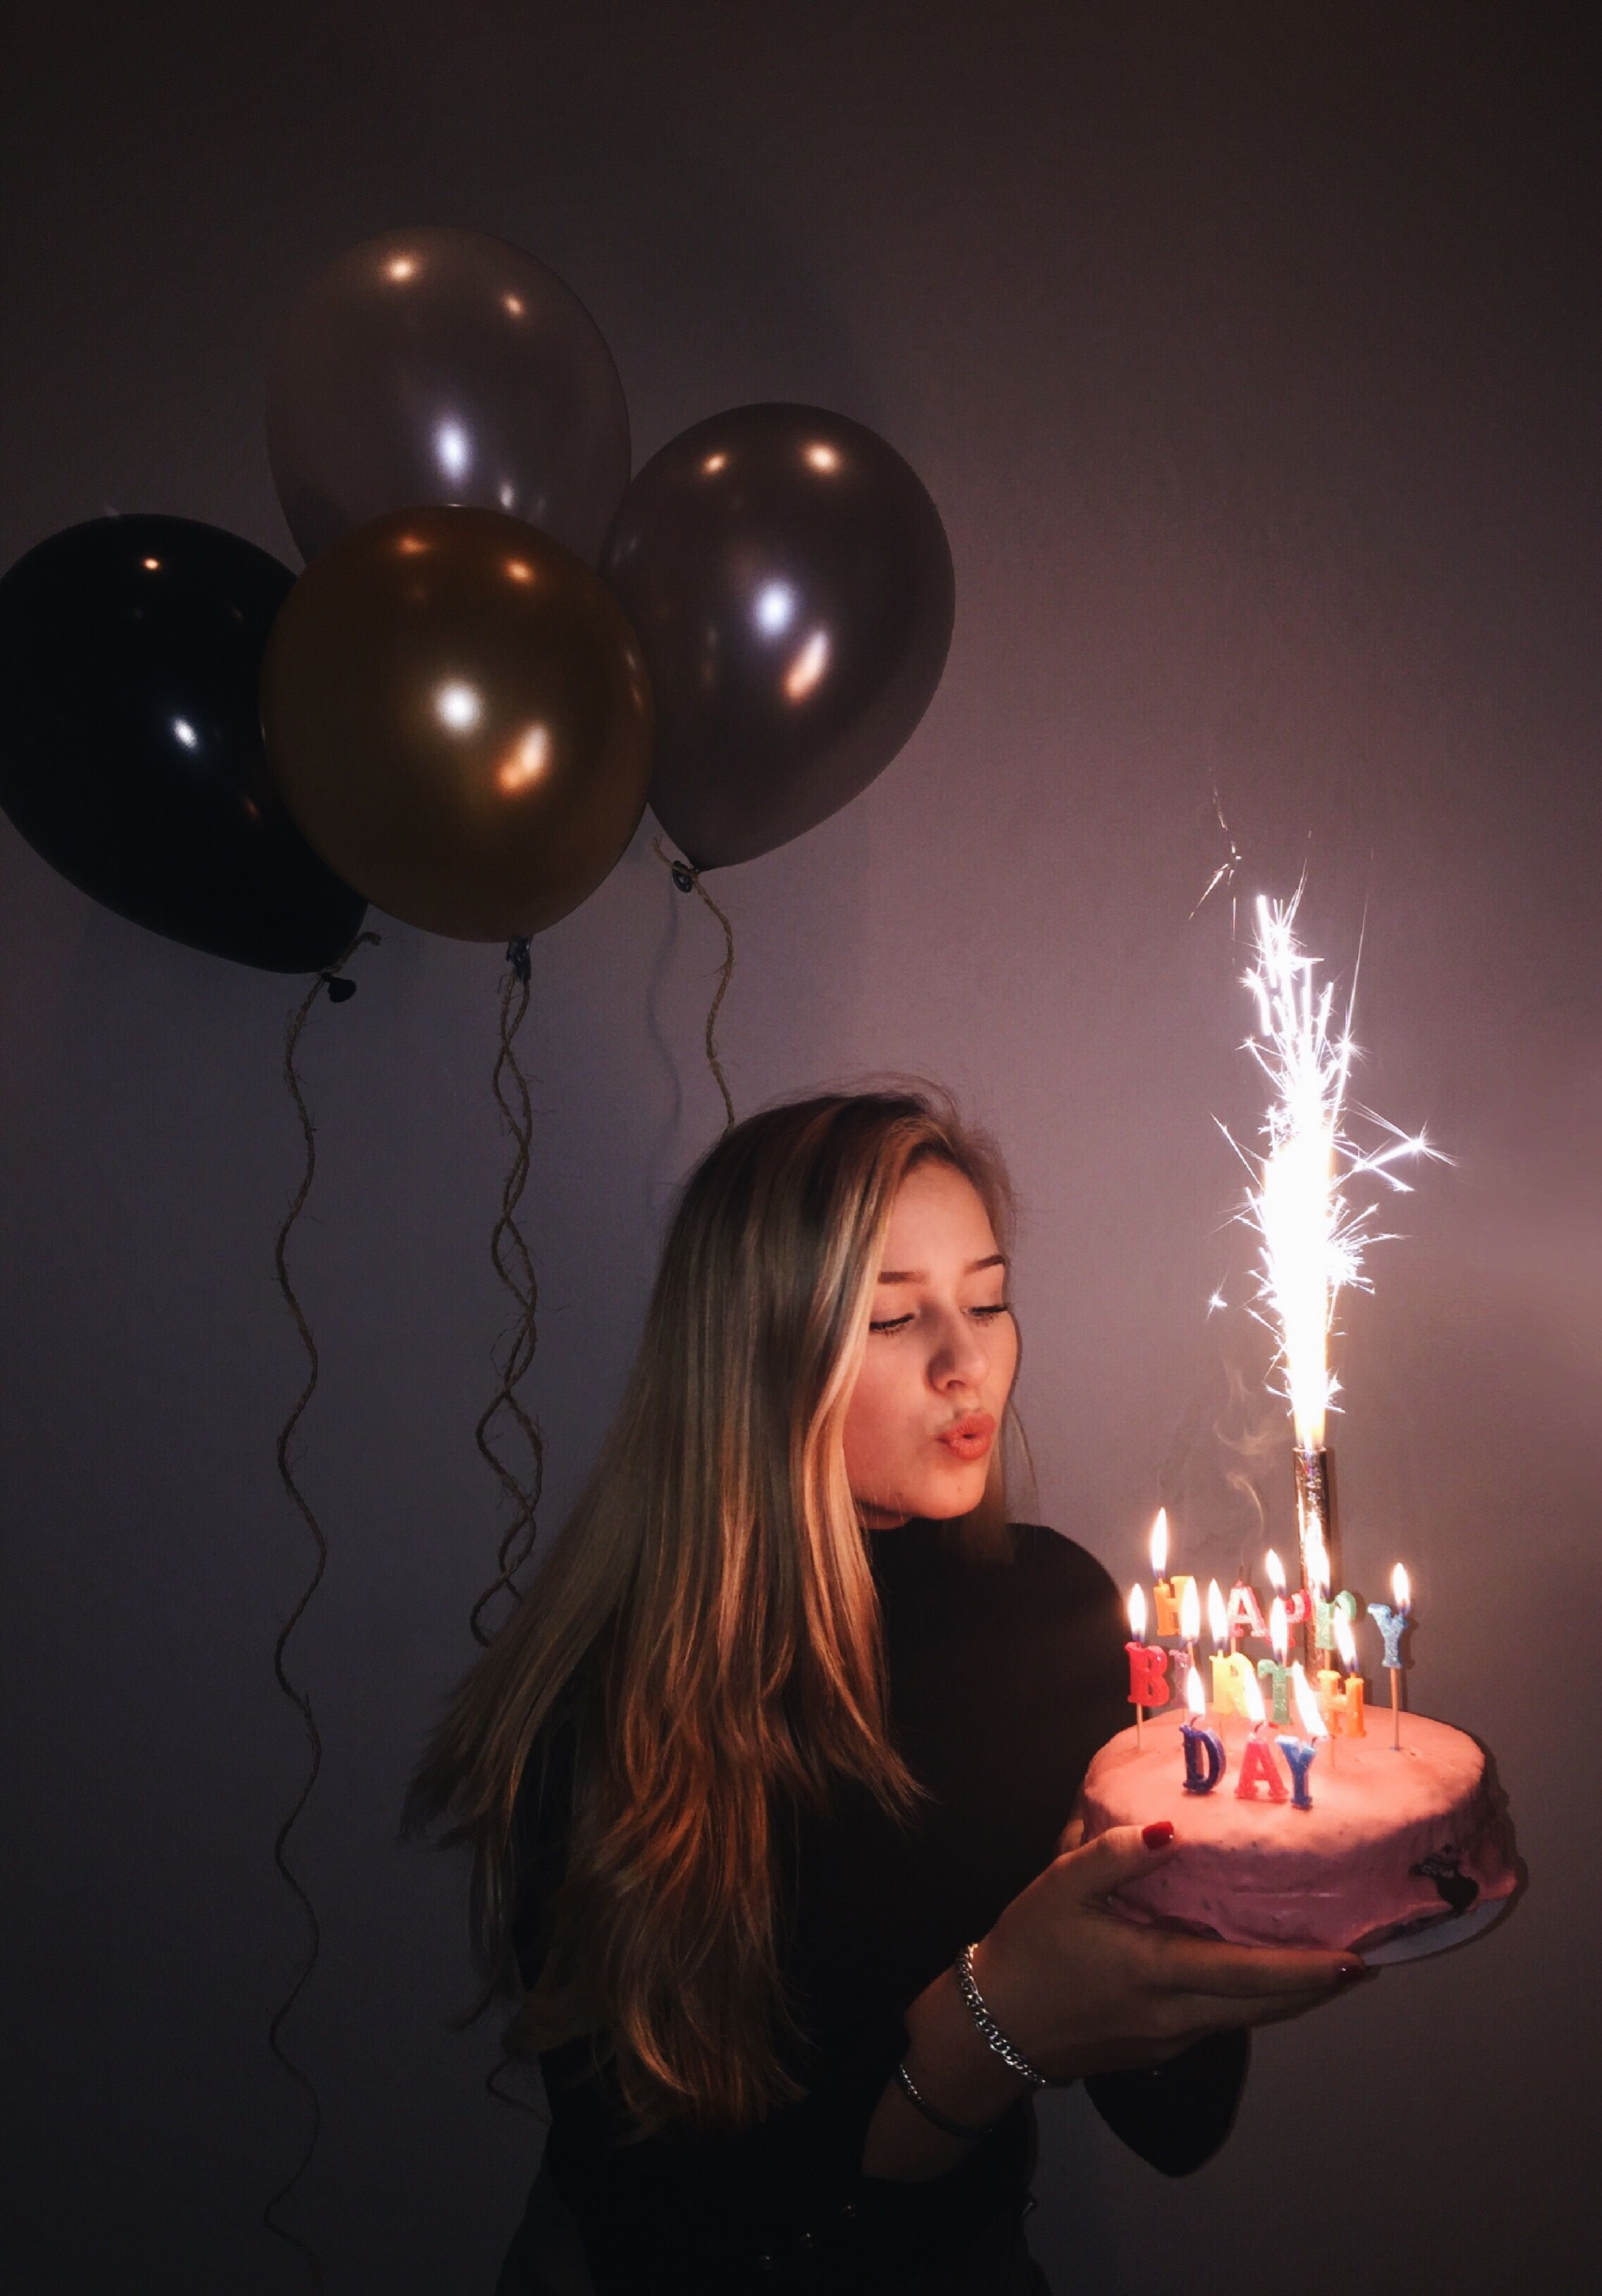 Birthday Shoot Sweet 16 Bday Photo Festa De Aniversario Tumblr